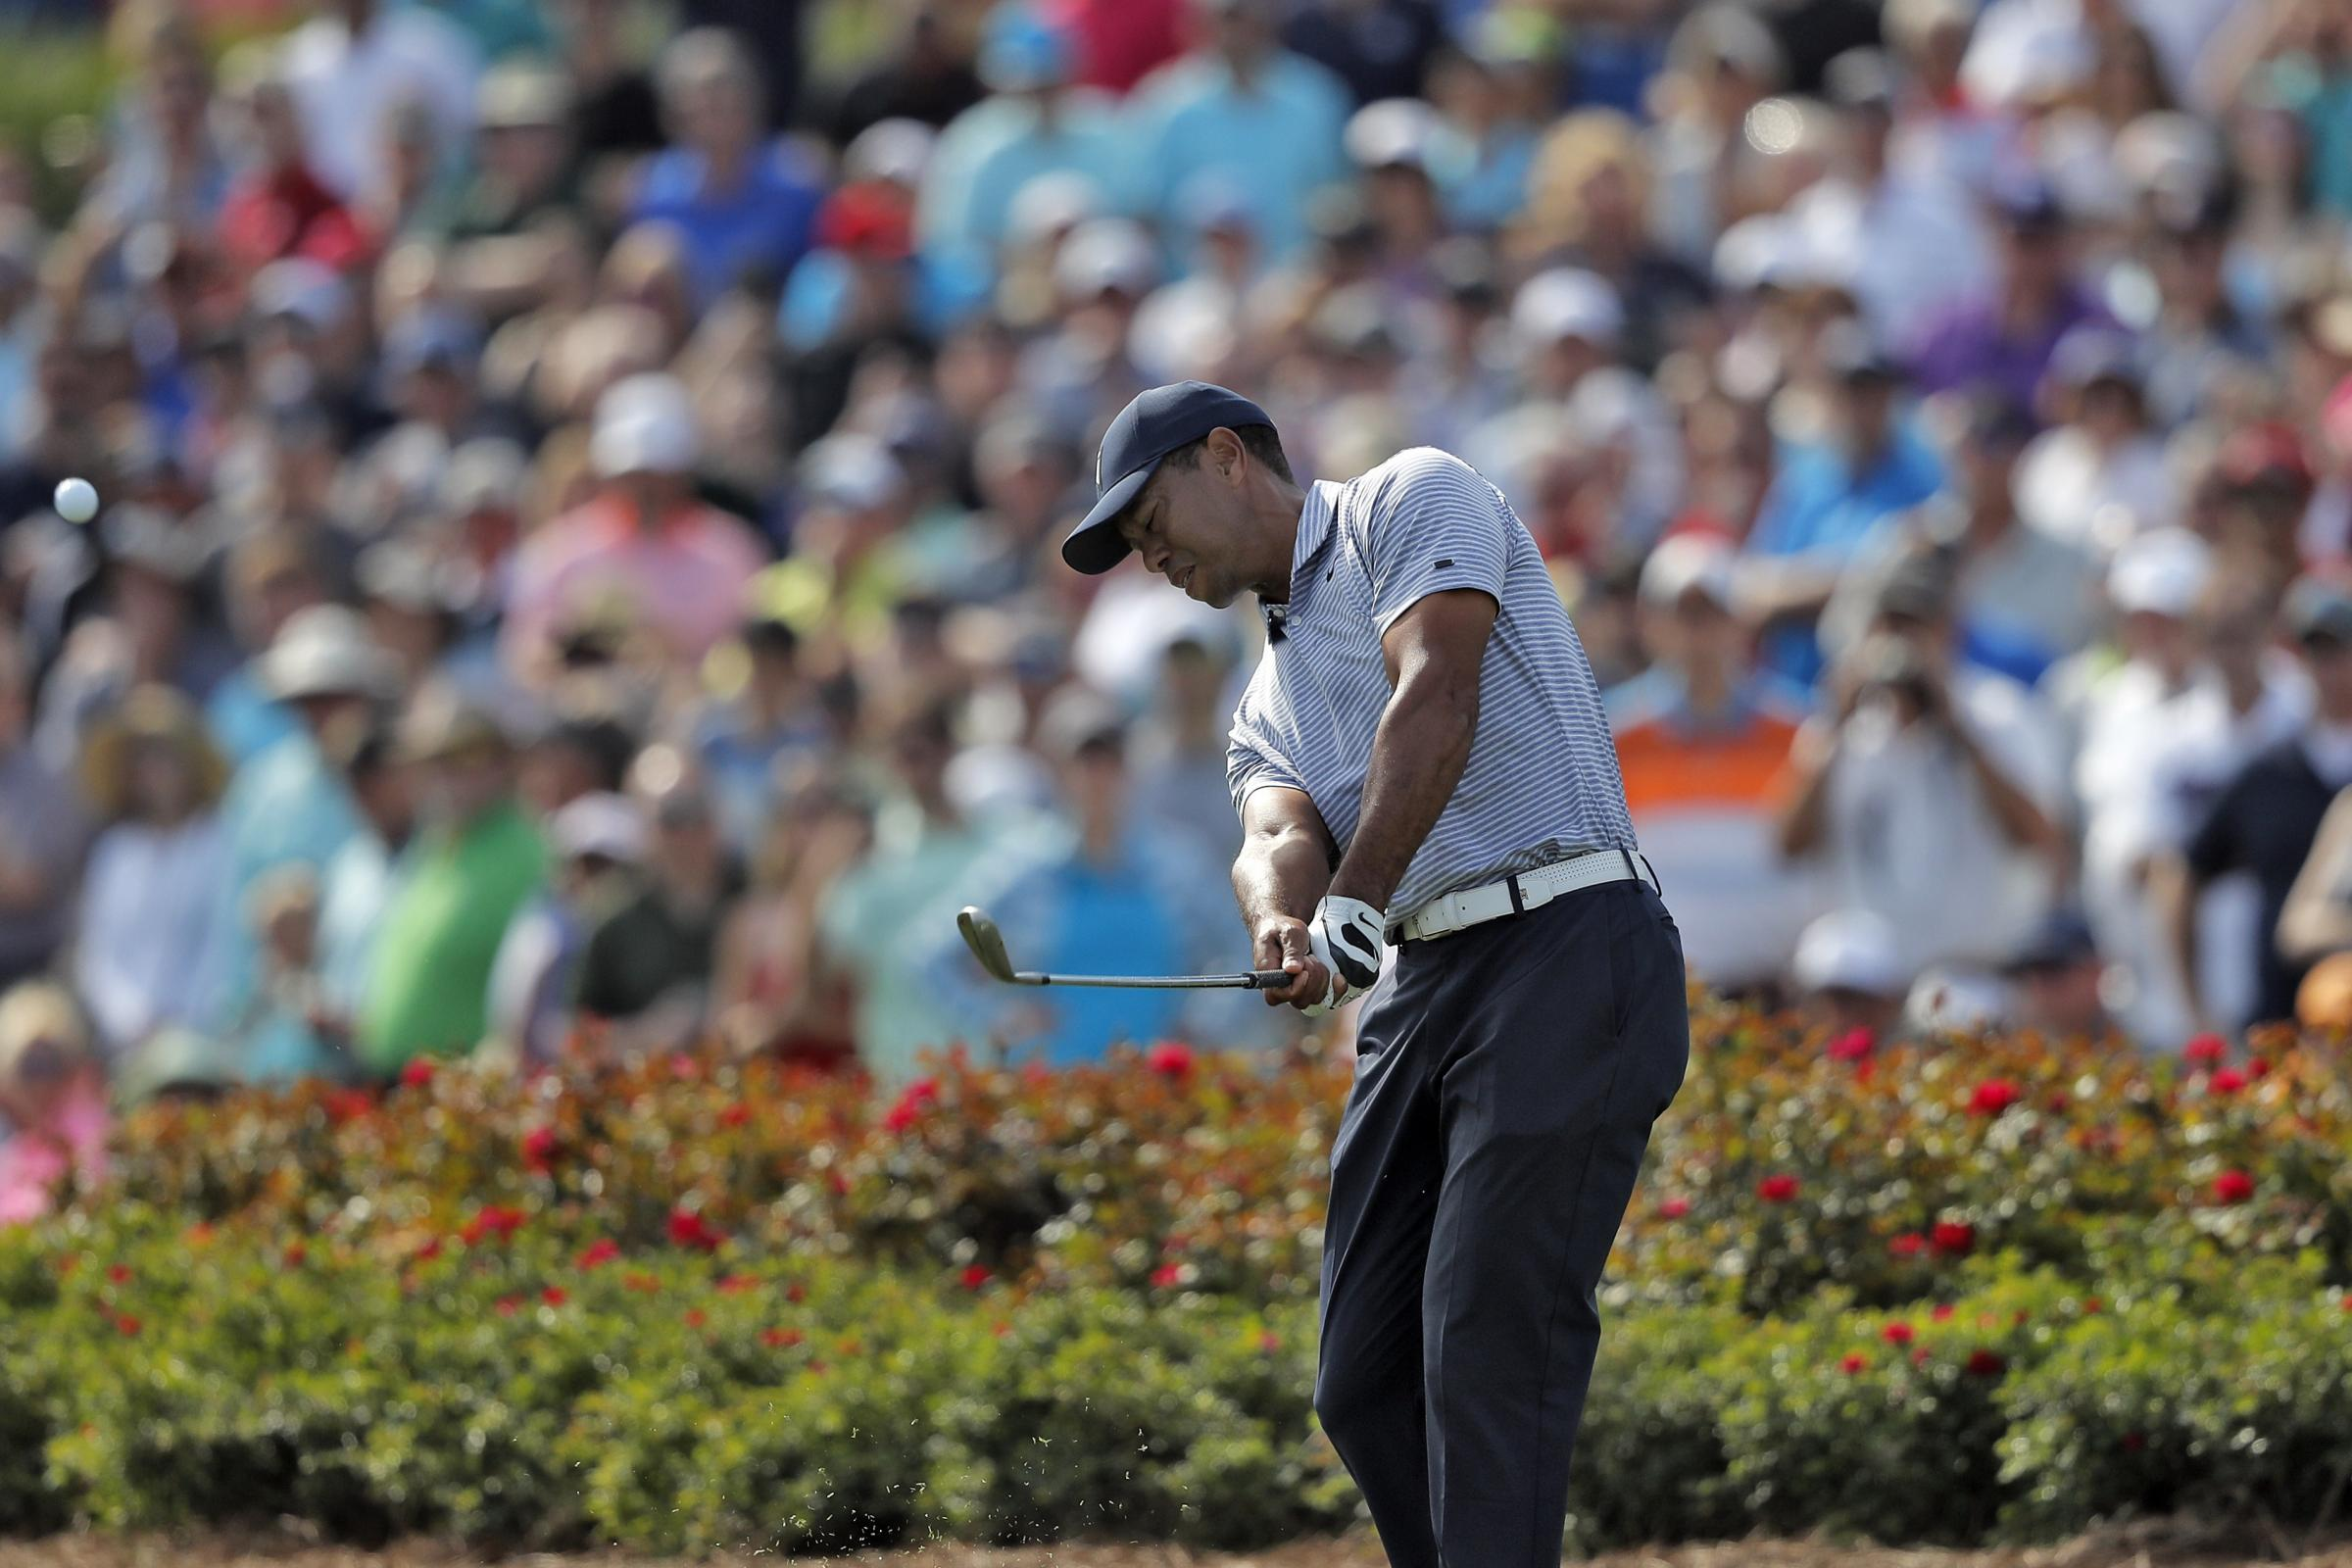 Tiger Woods plays a shot from the drop zone after hitting his tee shot into the water on the 17th hole